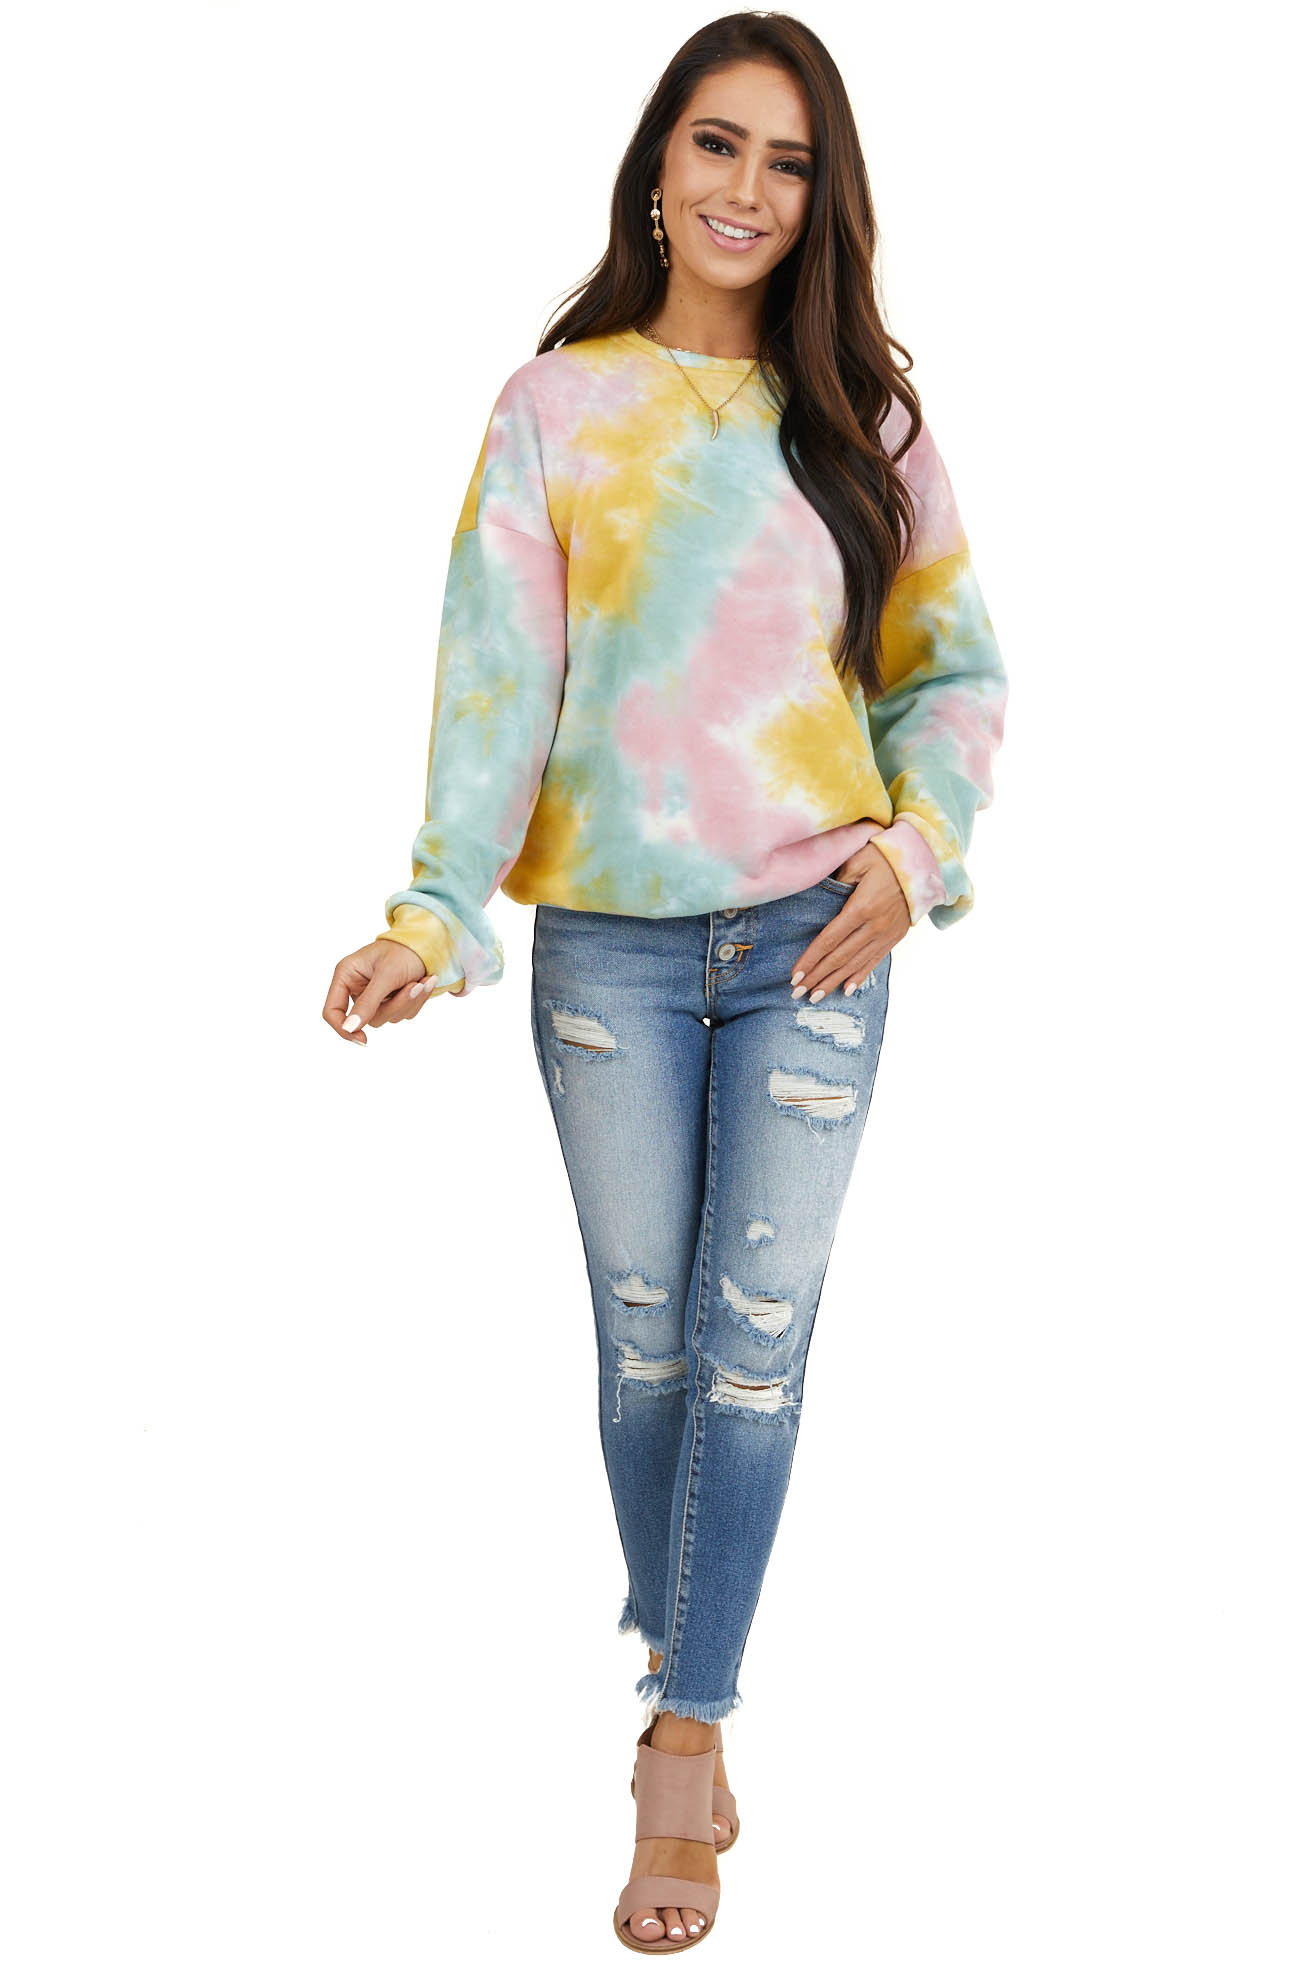 Pastel Tie Dye Pullover Heavy Knit Top with Long Sleeves